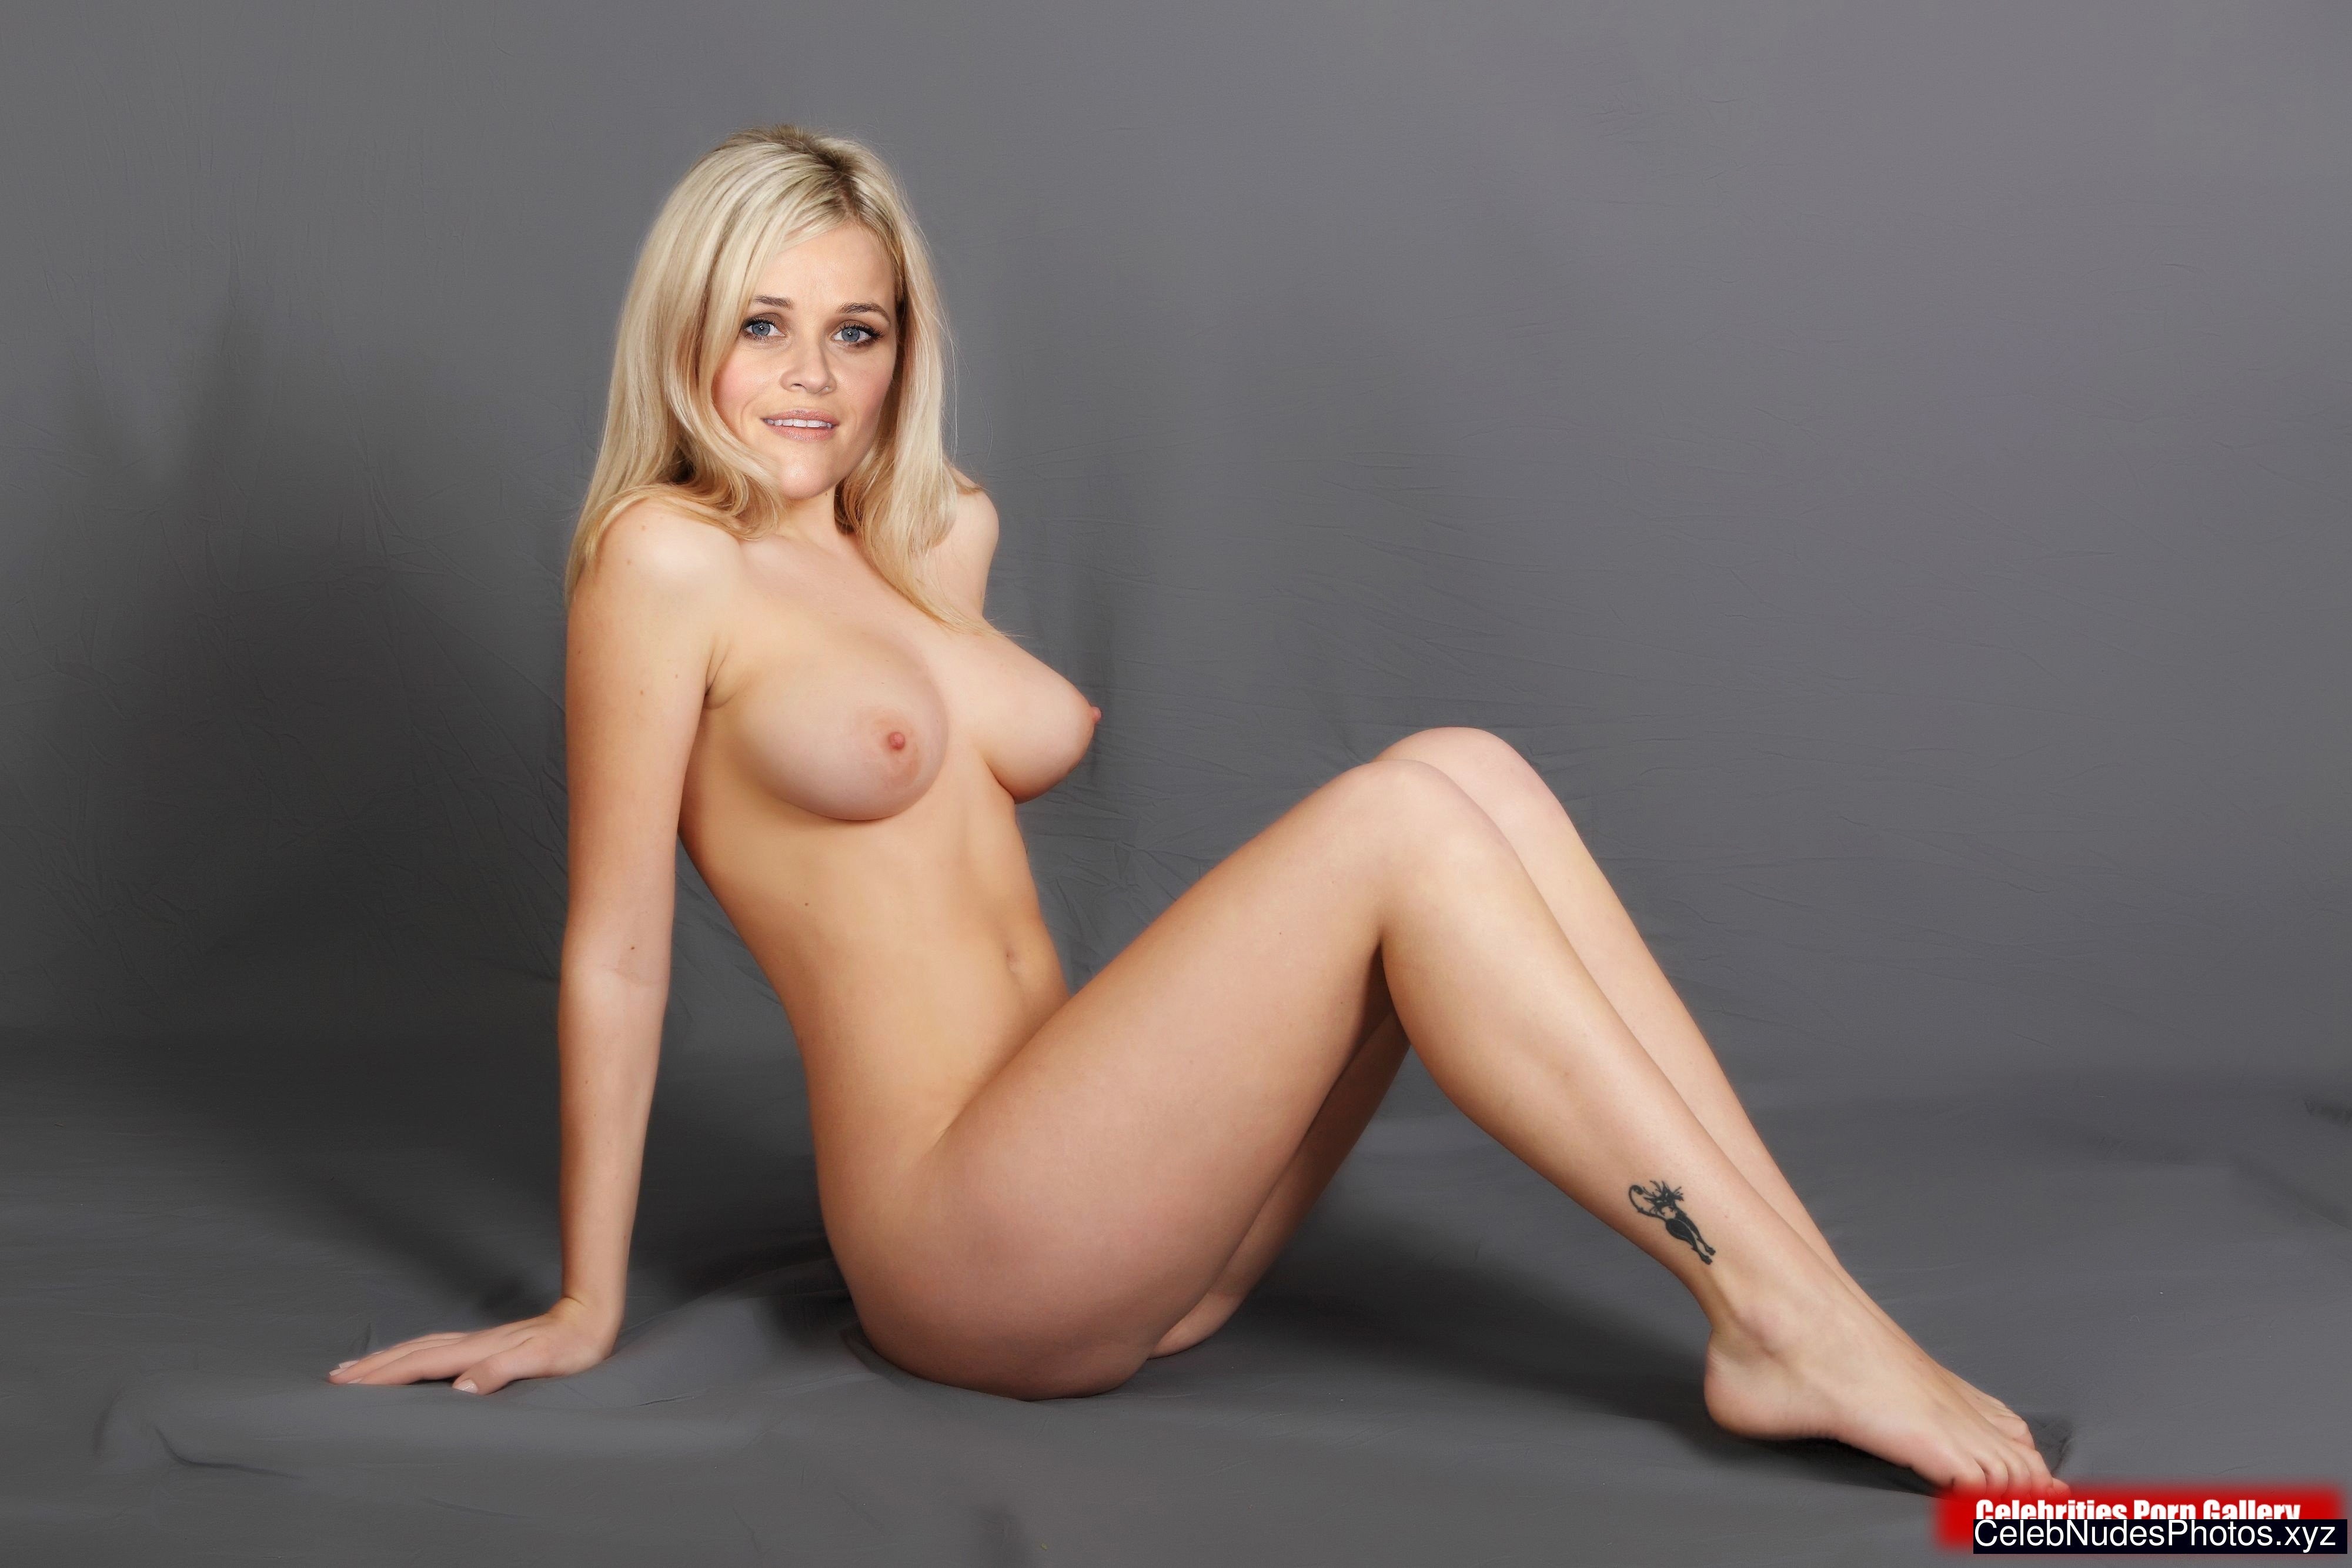 Reese Witherspoon celebrity nude